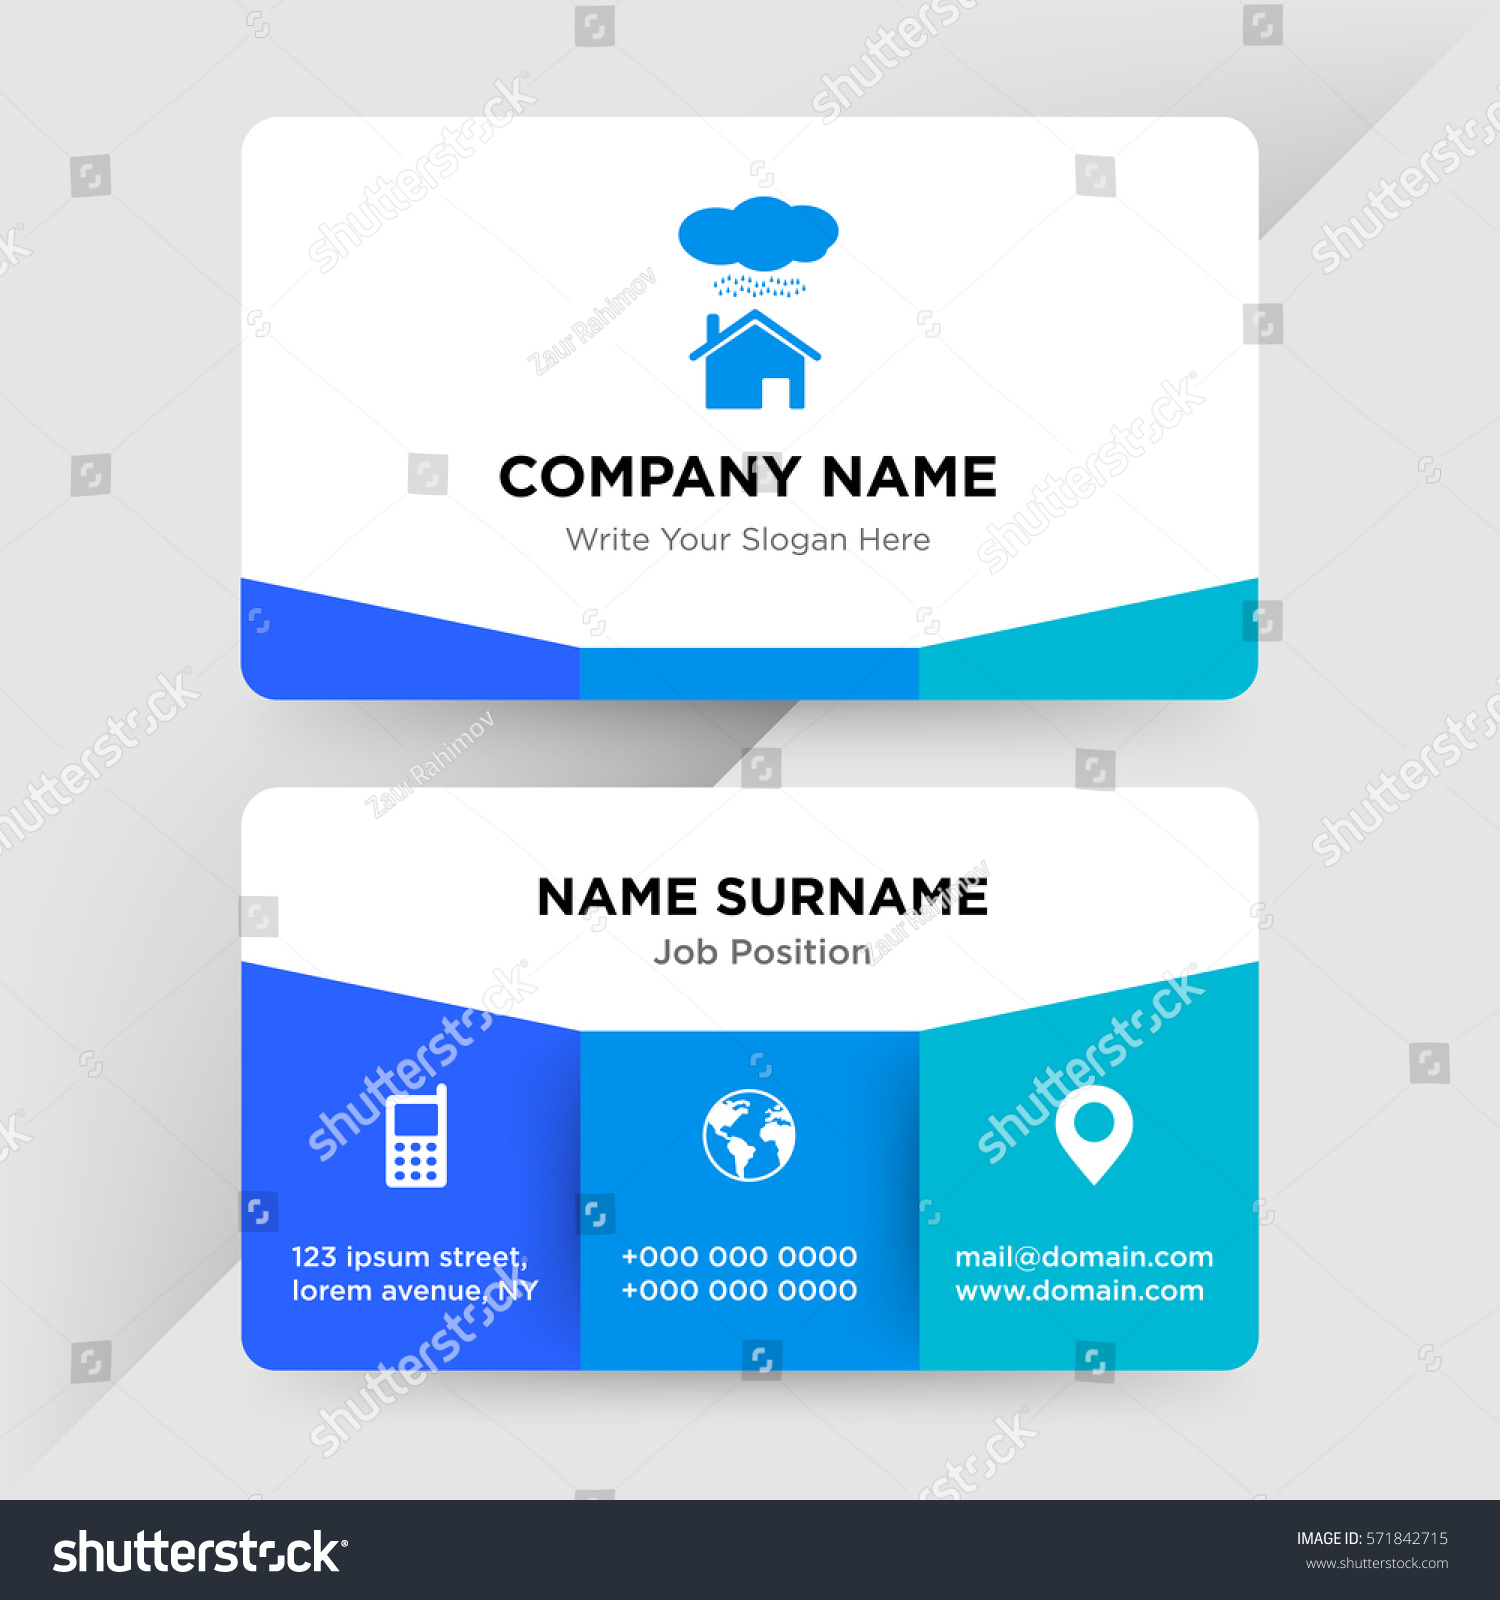 Insurance business cards unlimitedgamers template business card insurance services company stock vector colourmoves